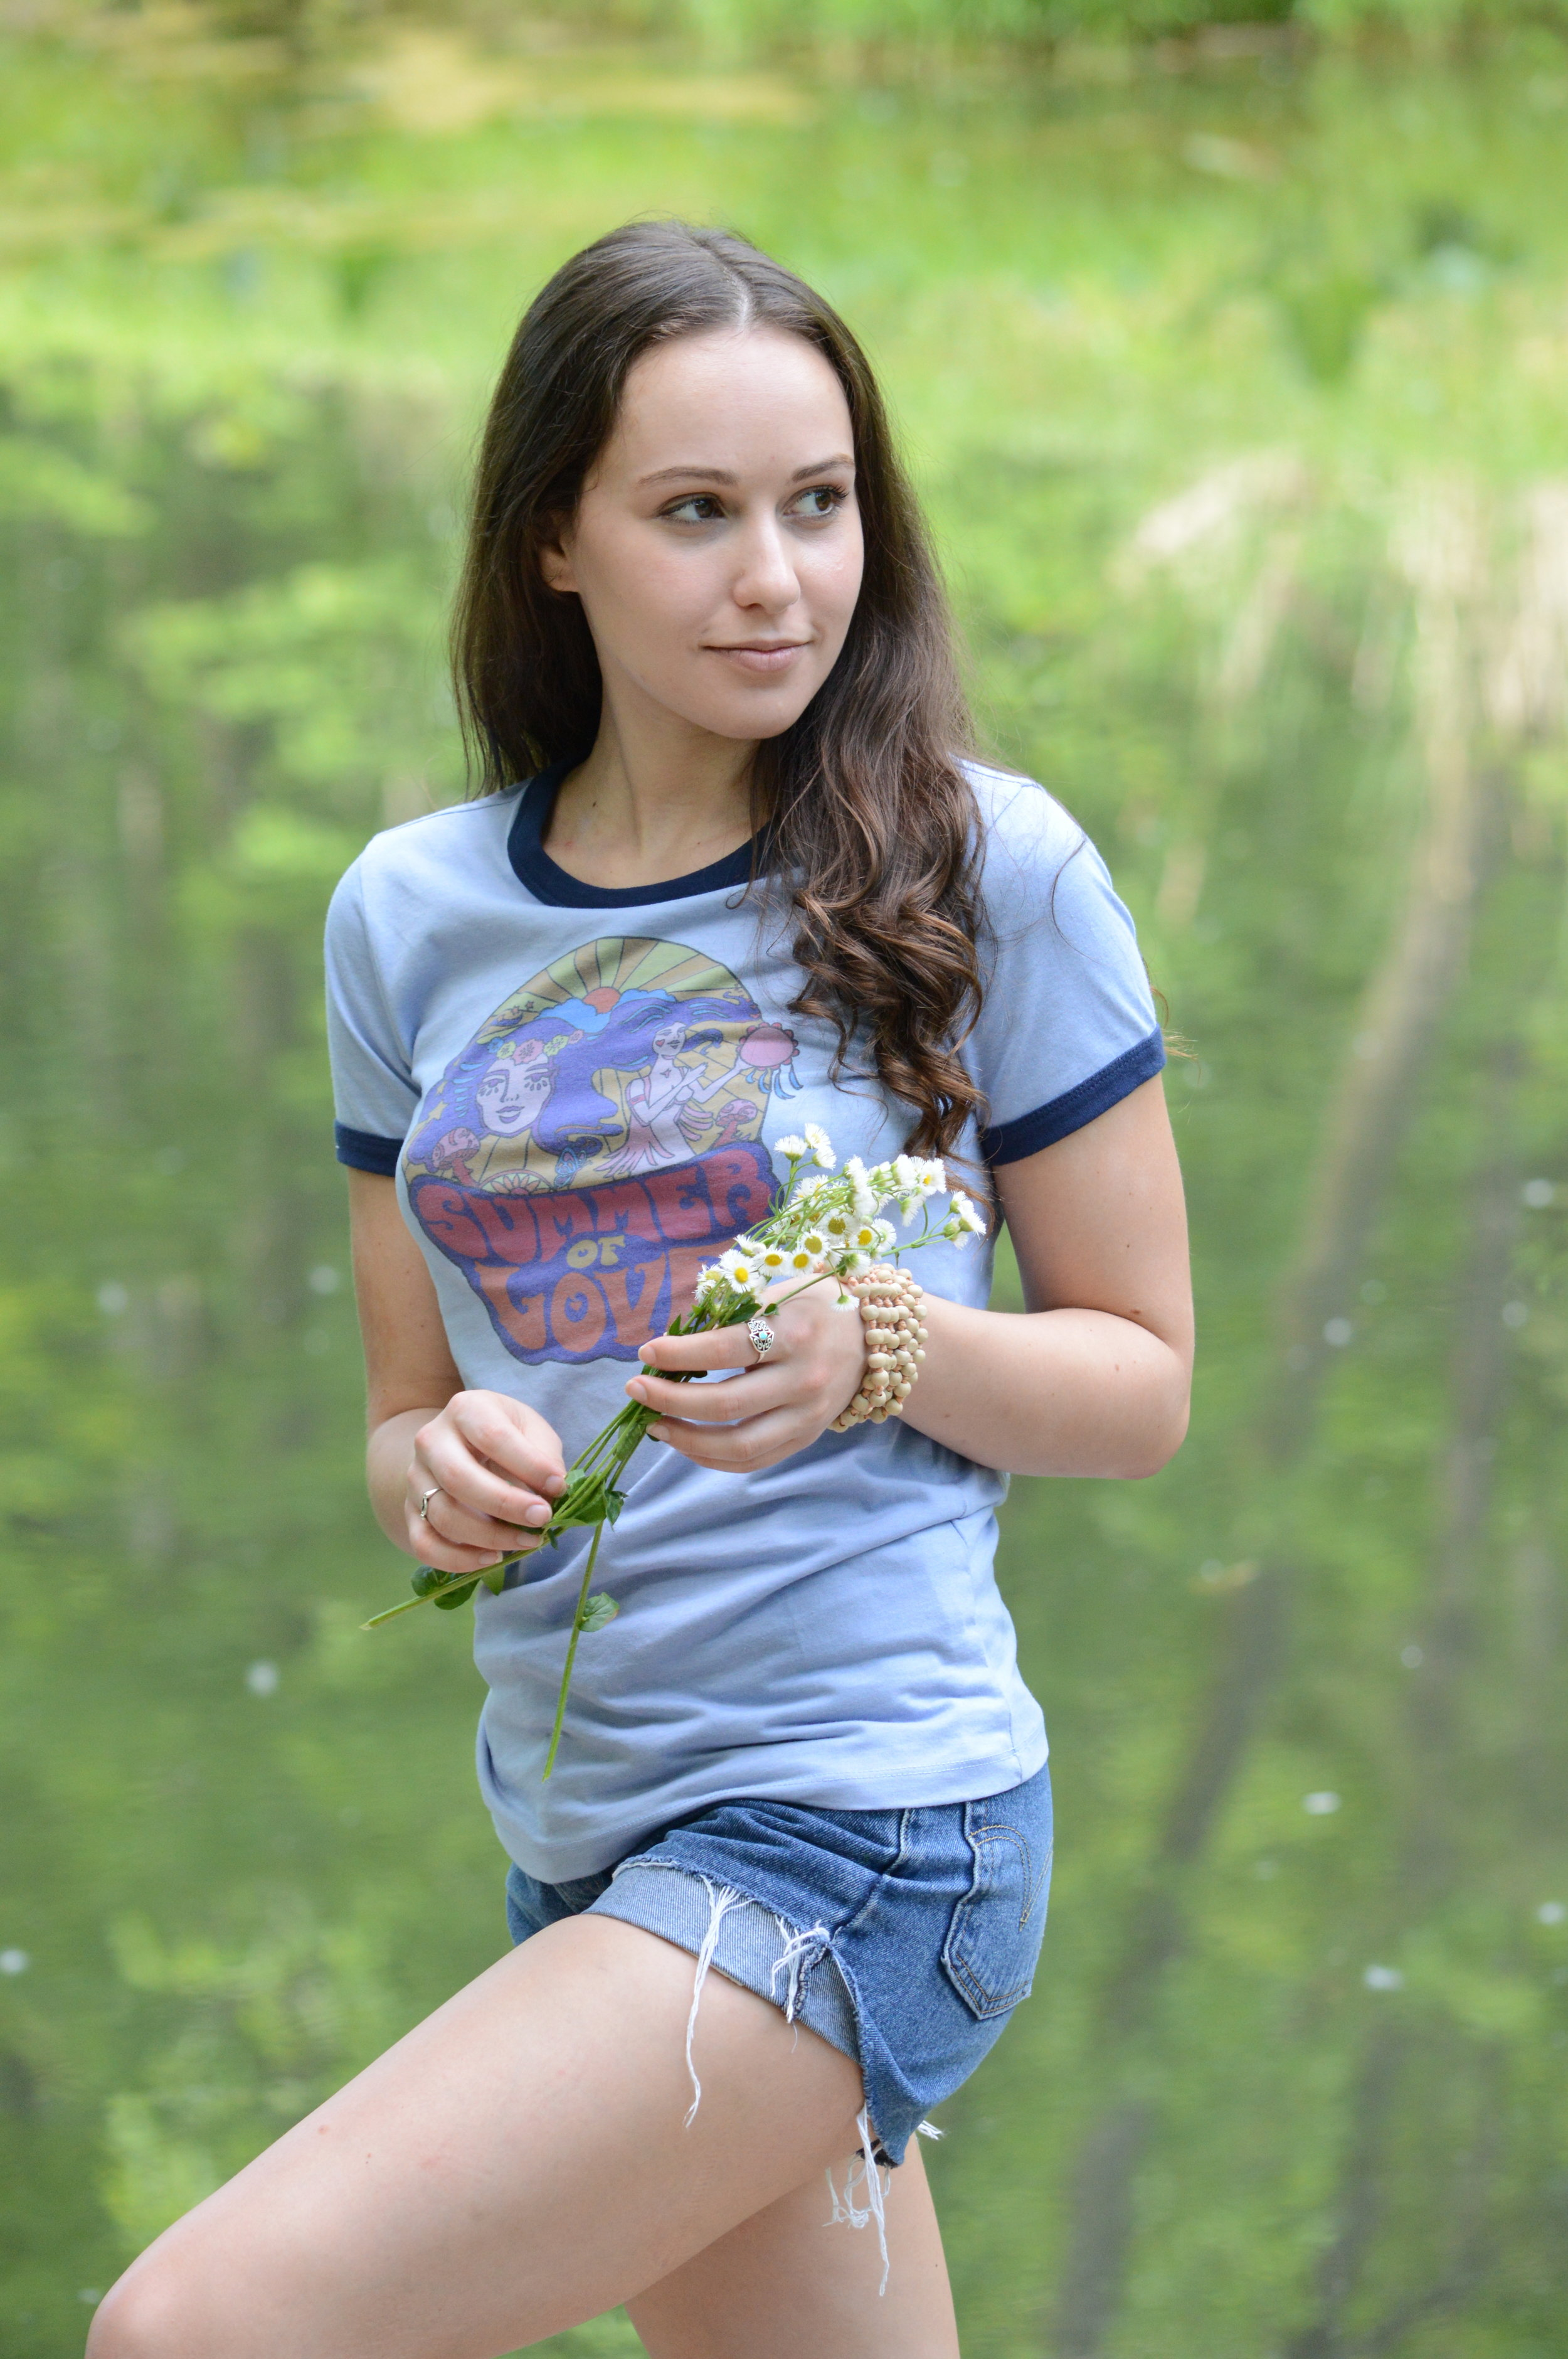 Classic Rock Couture  t-shirt, vintage Levis shorts.Photography: @lkfphotography  (my talented mother)